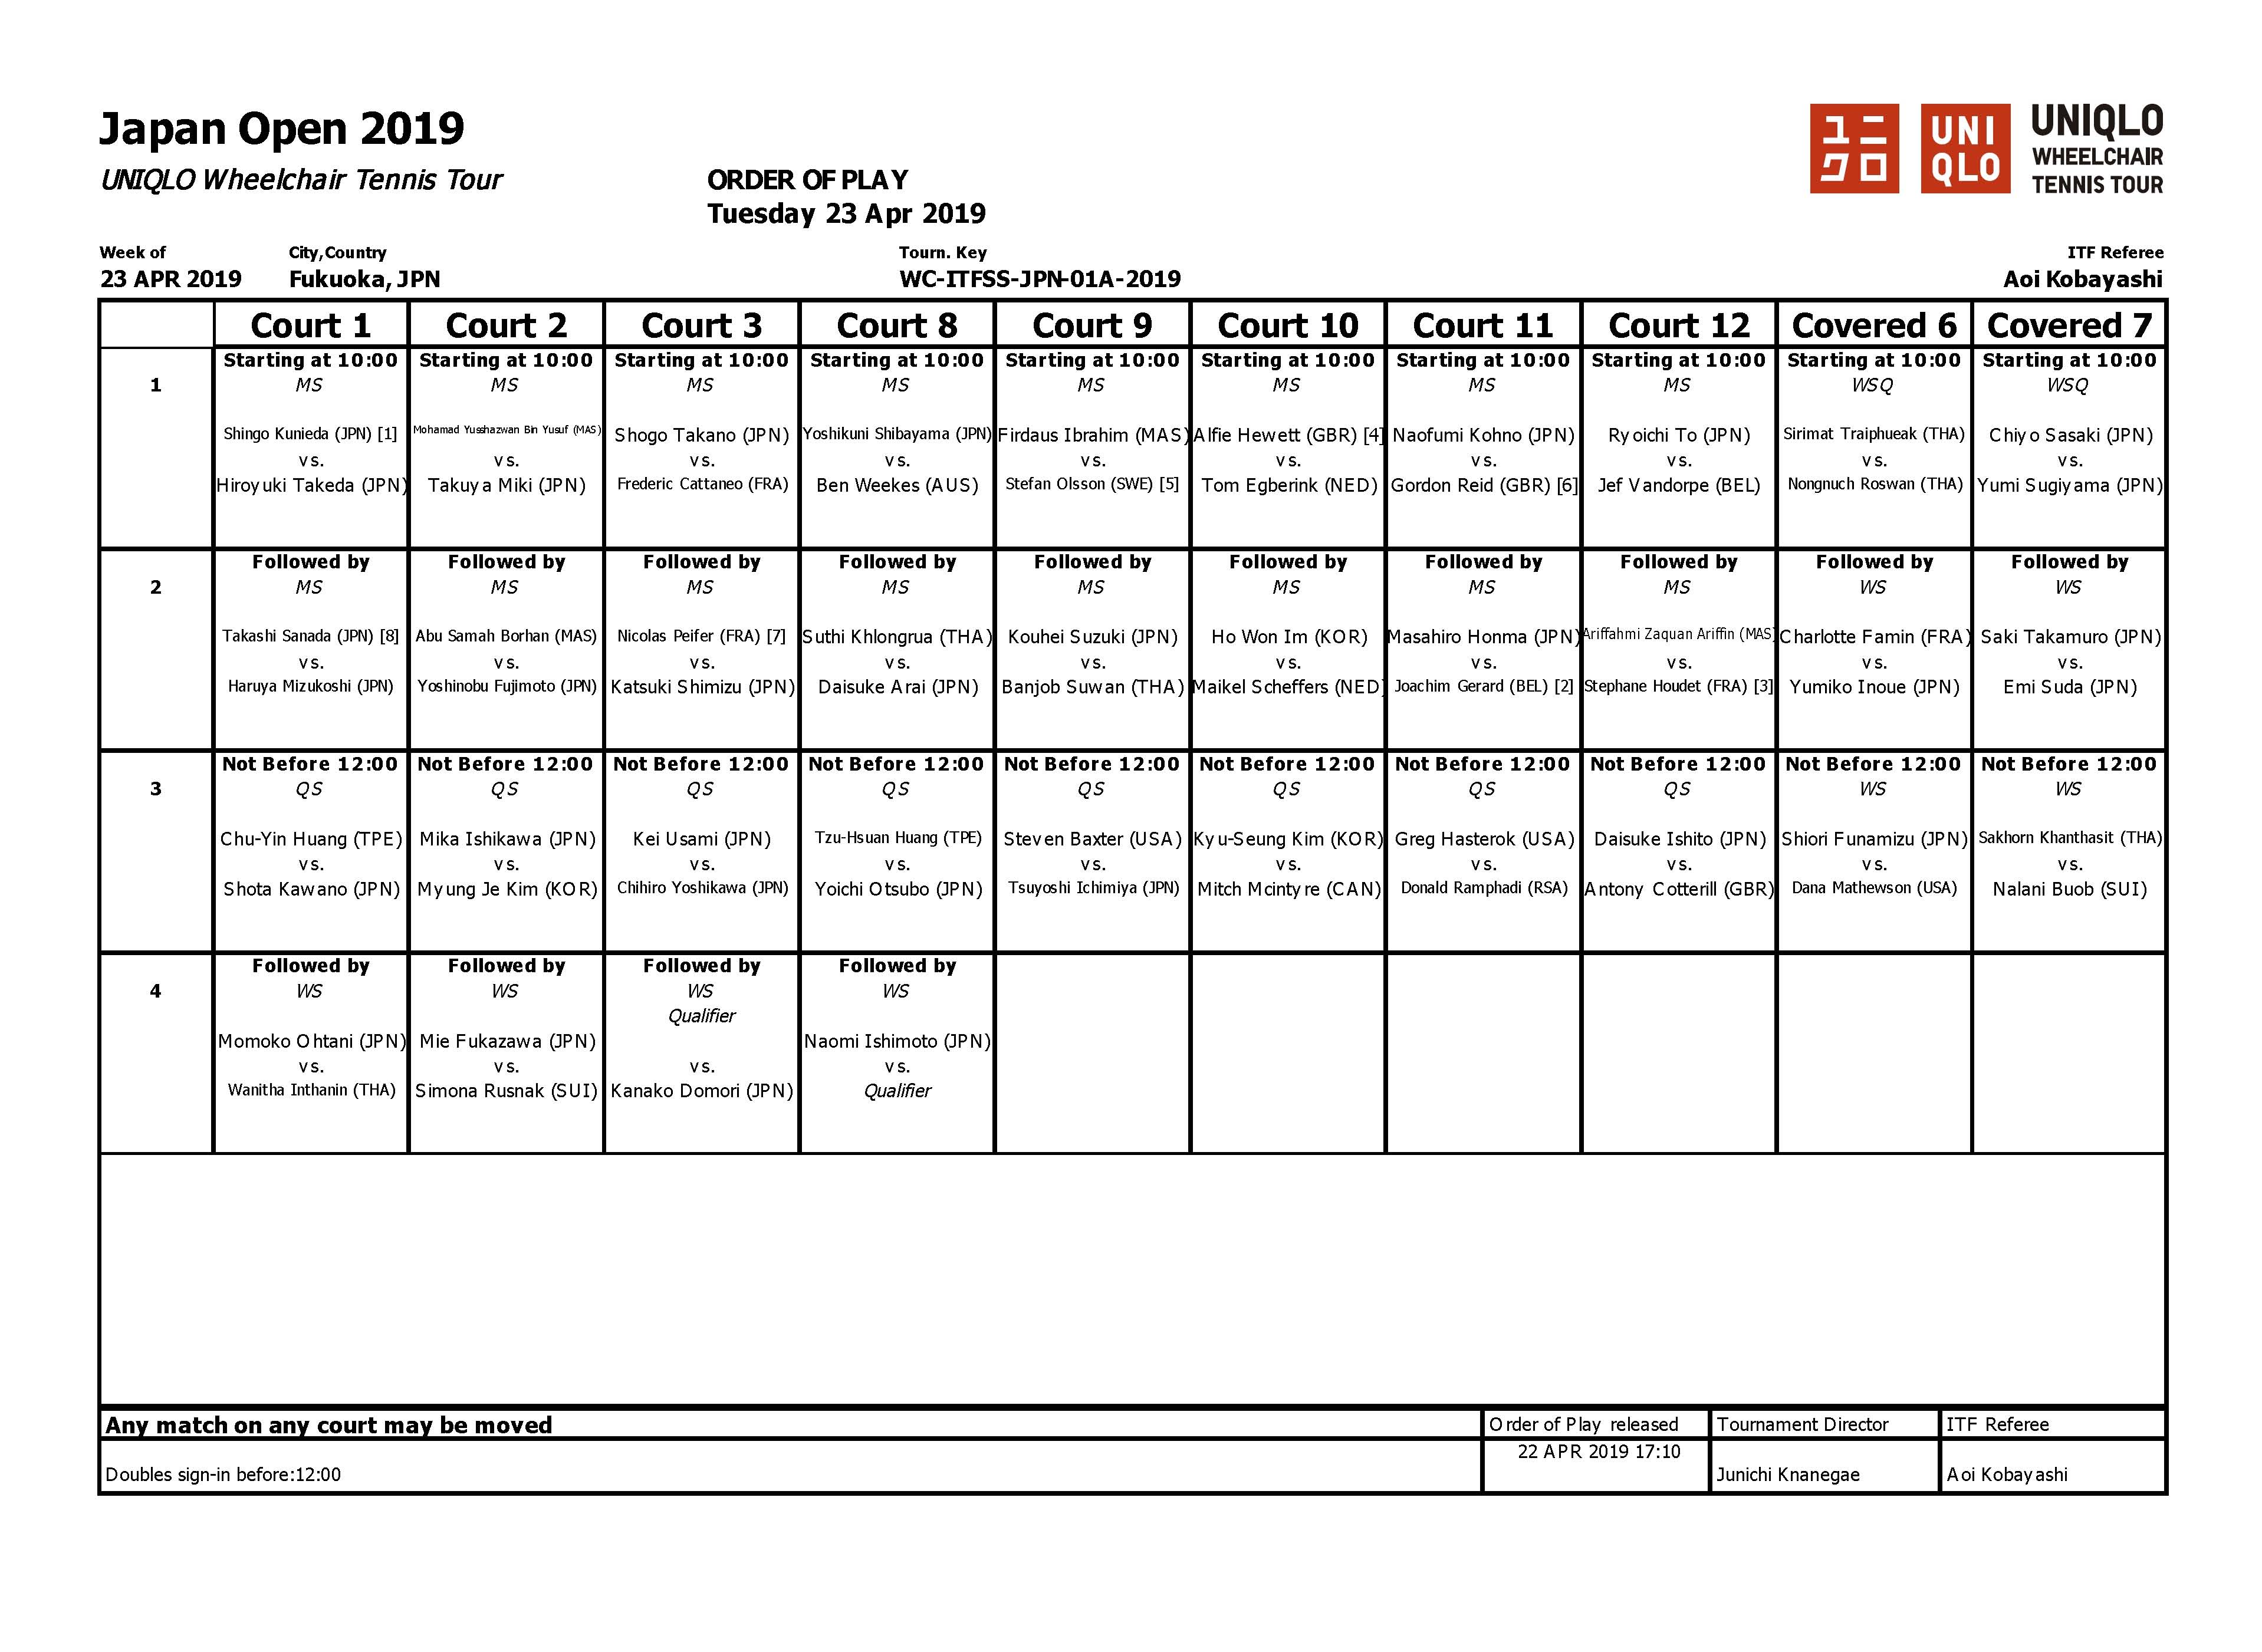 オーダーオブプレー/Order of Play(Apr 23)【JAPAN OPEN】